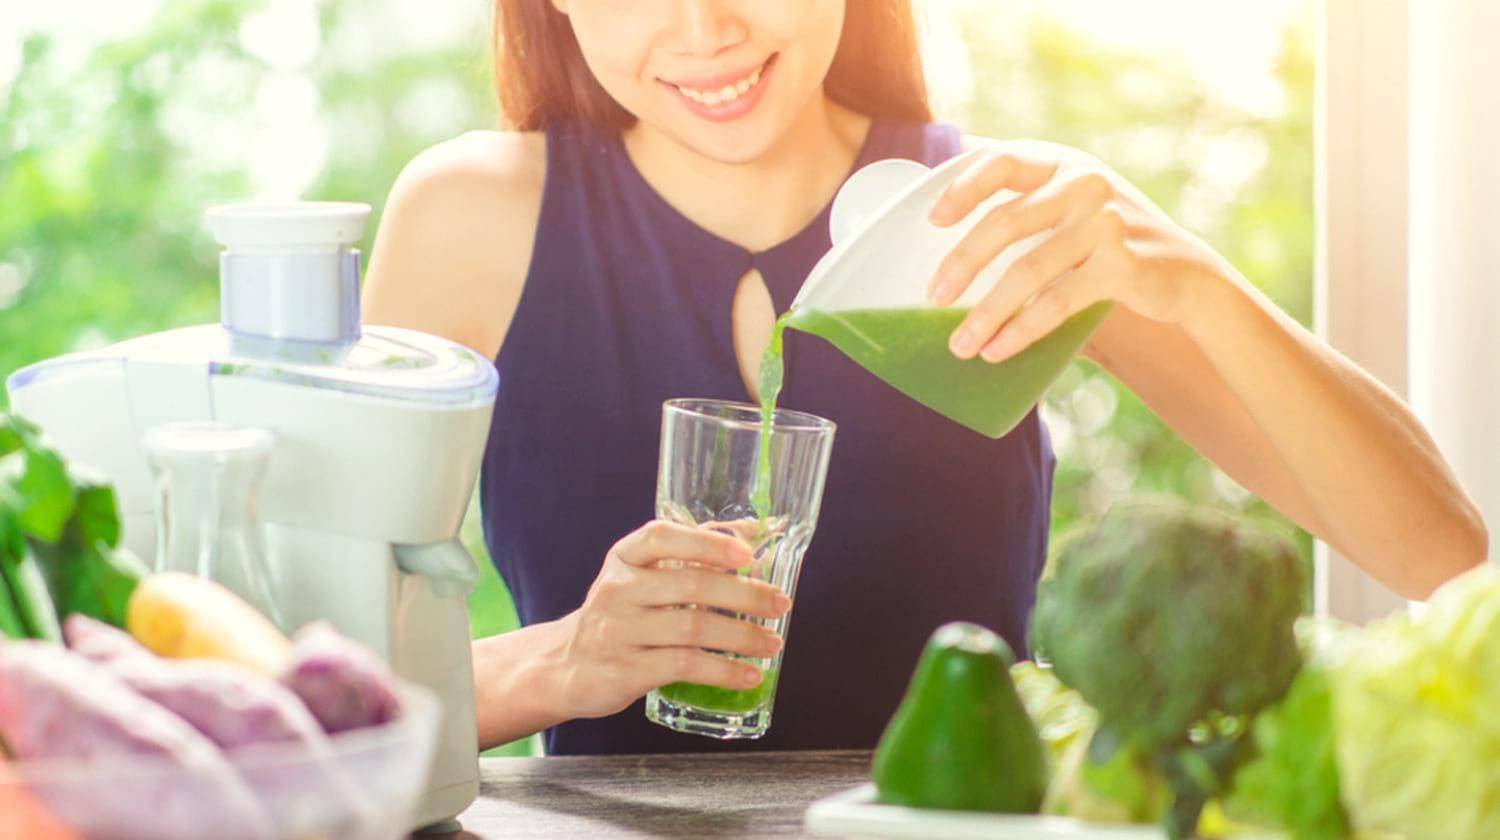 Featured | Young Asian Woman Happy Drinking Fresh Green Detox Vegetable Juice | Essential Health Benefits of Eating Leafy and Green Vegetables